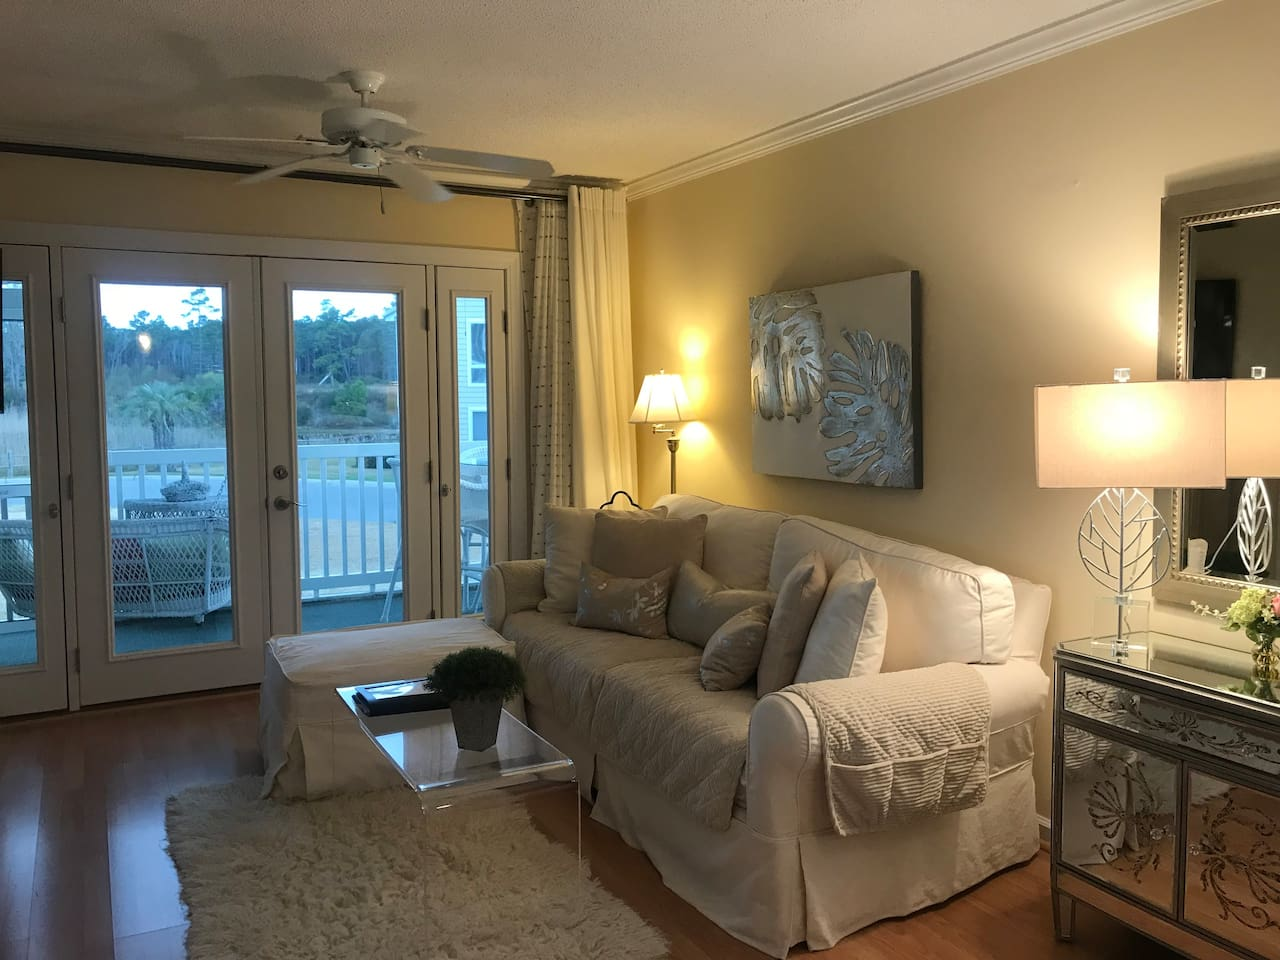 Bee's Waterway Getaway offers a limited view of the ICW, comfortable designer seating, and a screened in porch with a sturdy swing to take a nap. The best of both worlds... Waterway, expansive green areas, & less than a mile to the beach.